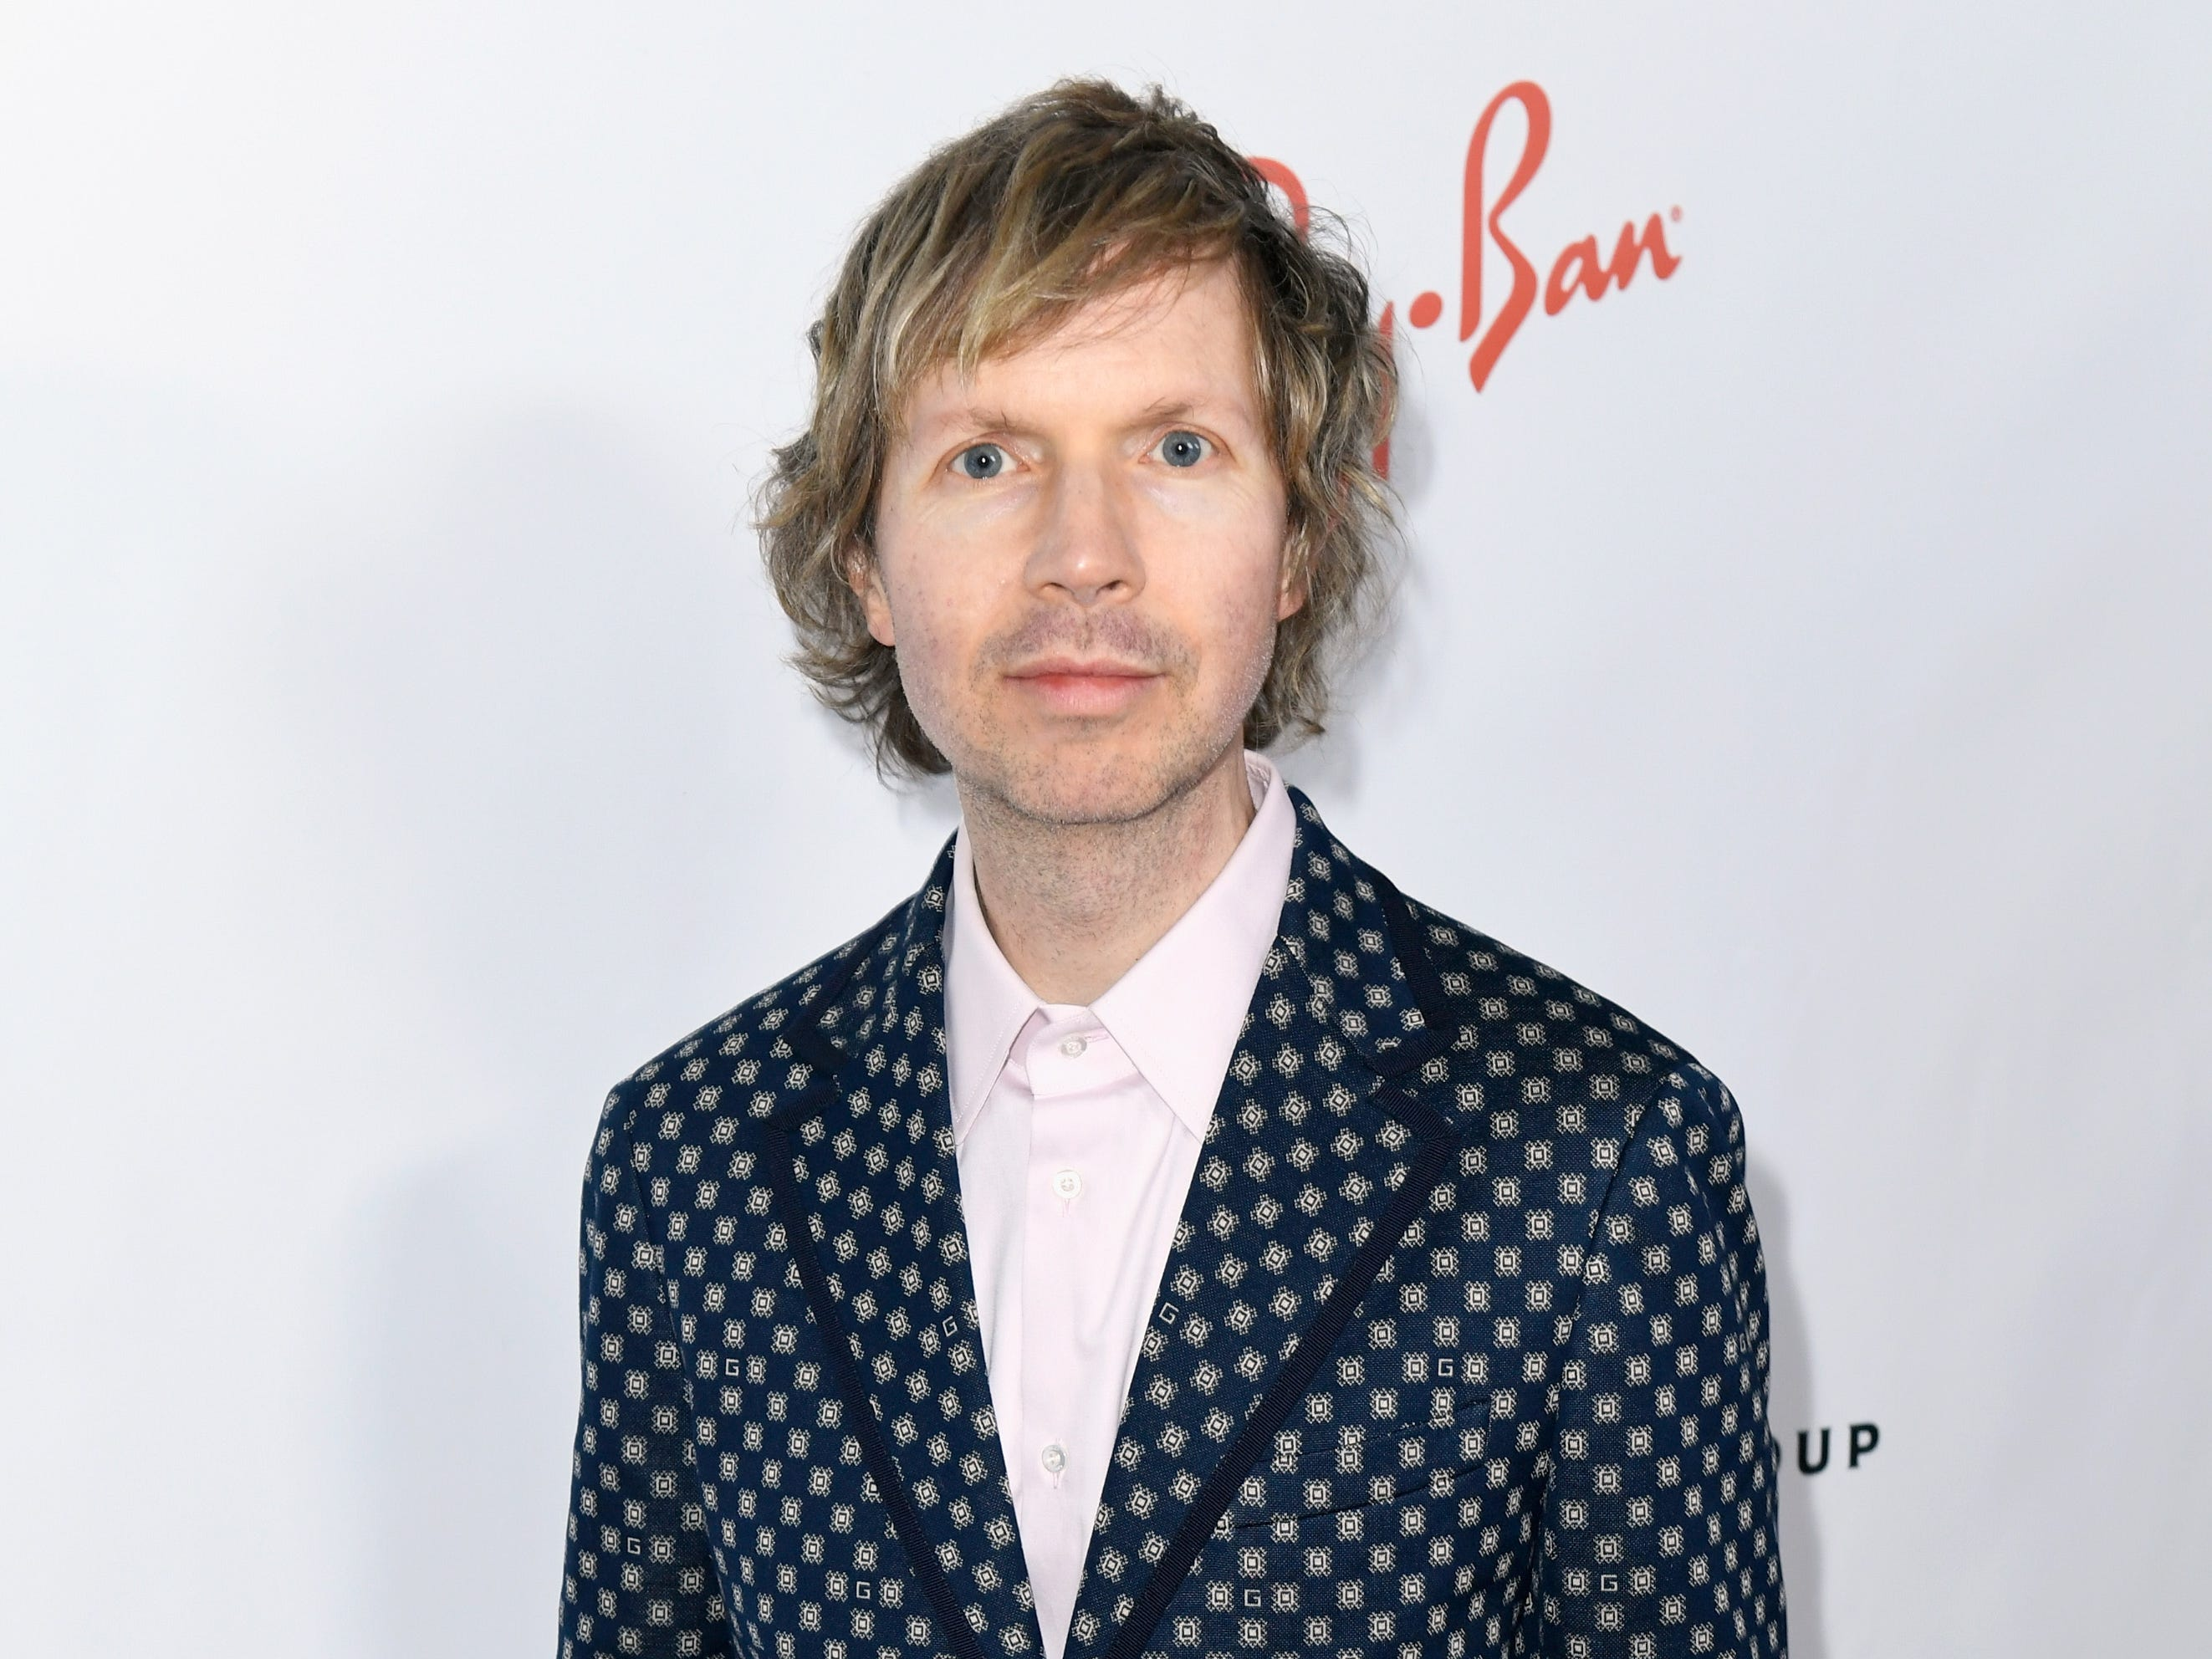 LOS ANGELES, CA - FEBRUARY 10: Beck  attends Universal Music Group's 2019 After Party Presented by Citi Celebrates The 61st Annual Grammy Awards on February 9, 2019 in Los Angeles, California.  (Photo by Timothy Norris/Getty Images for for Universal Music Group ) ORG XMIT: 775289866 ORIG FILE ID: 1097767218